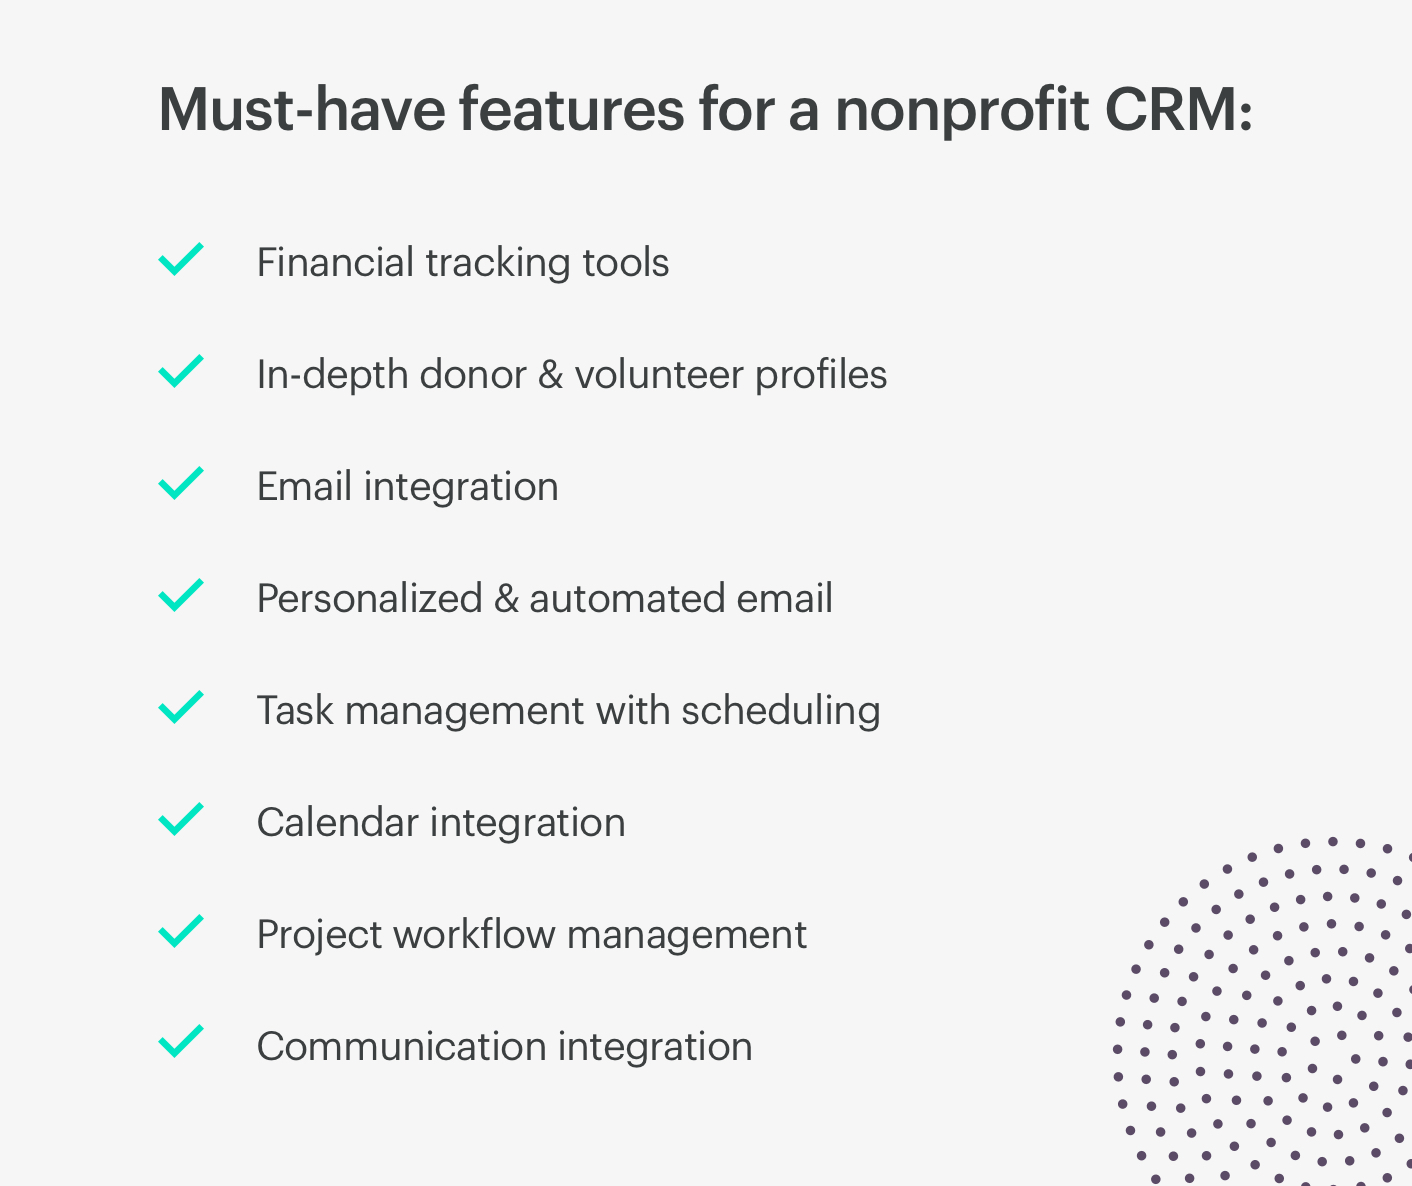 must-have features for a non-profit crm